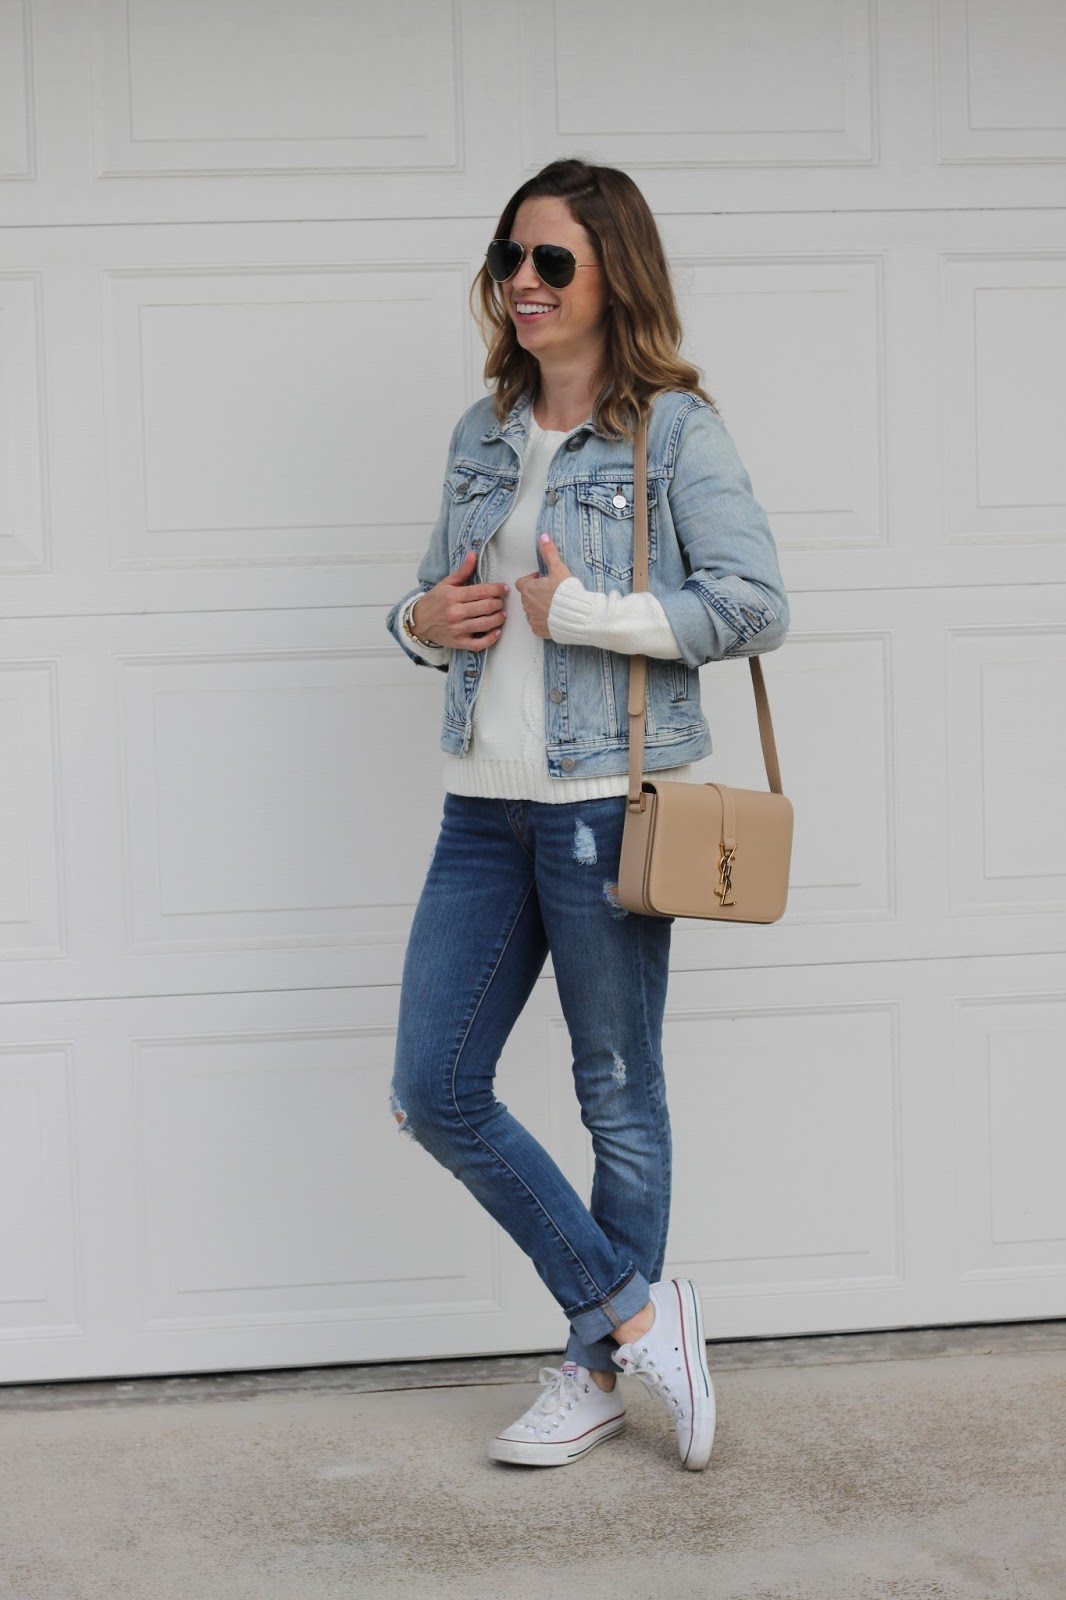 jean jacket and jean outfit